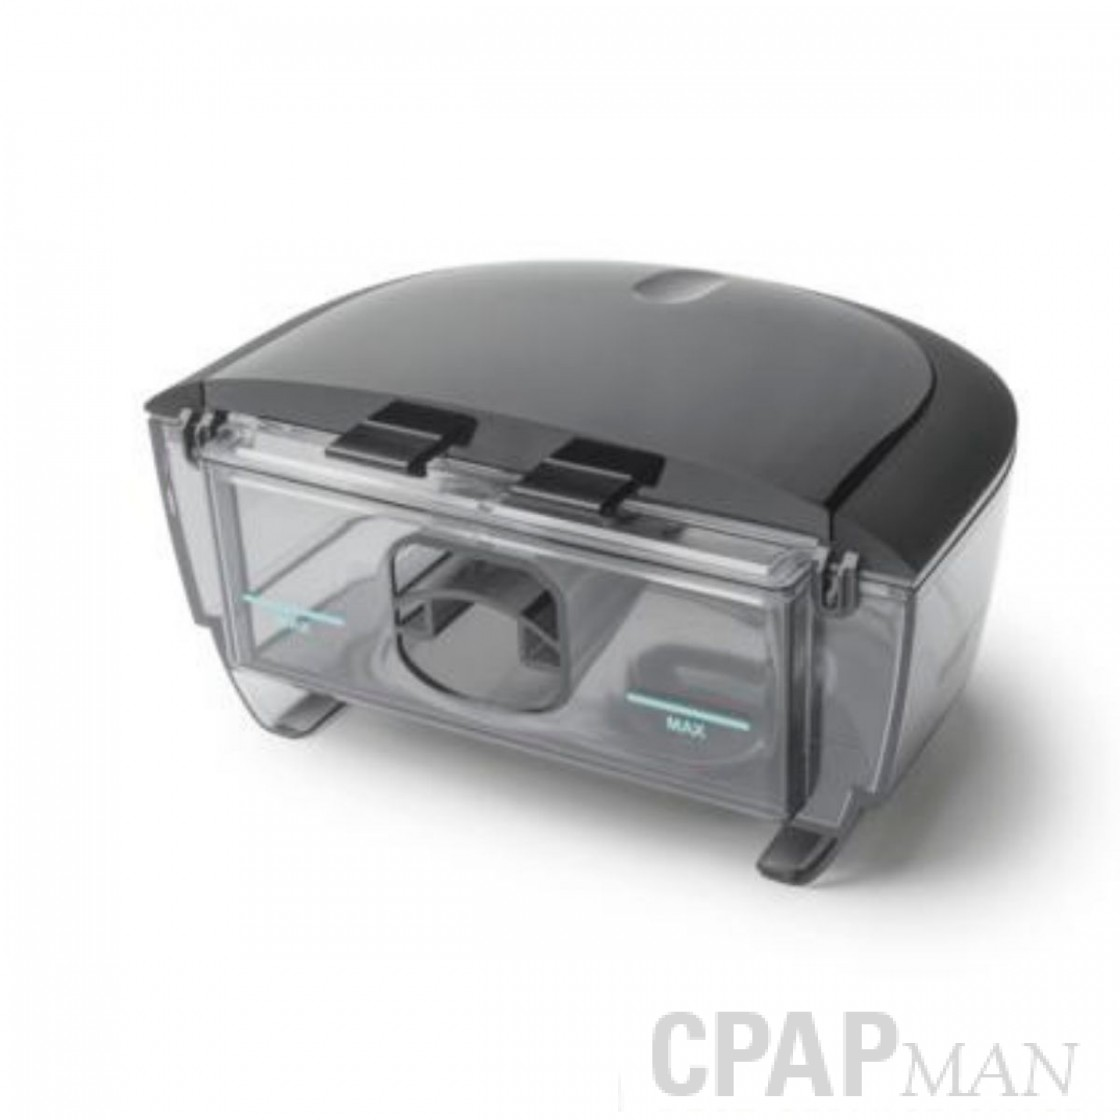 DreamStation 2 Auto CPAP Advanced Water Tank - Philips